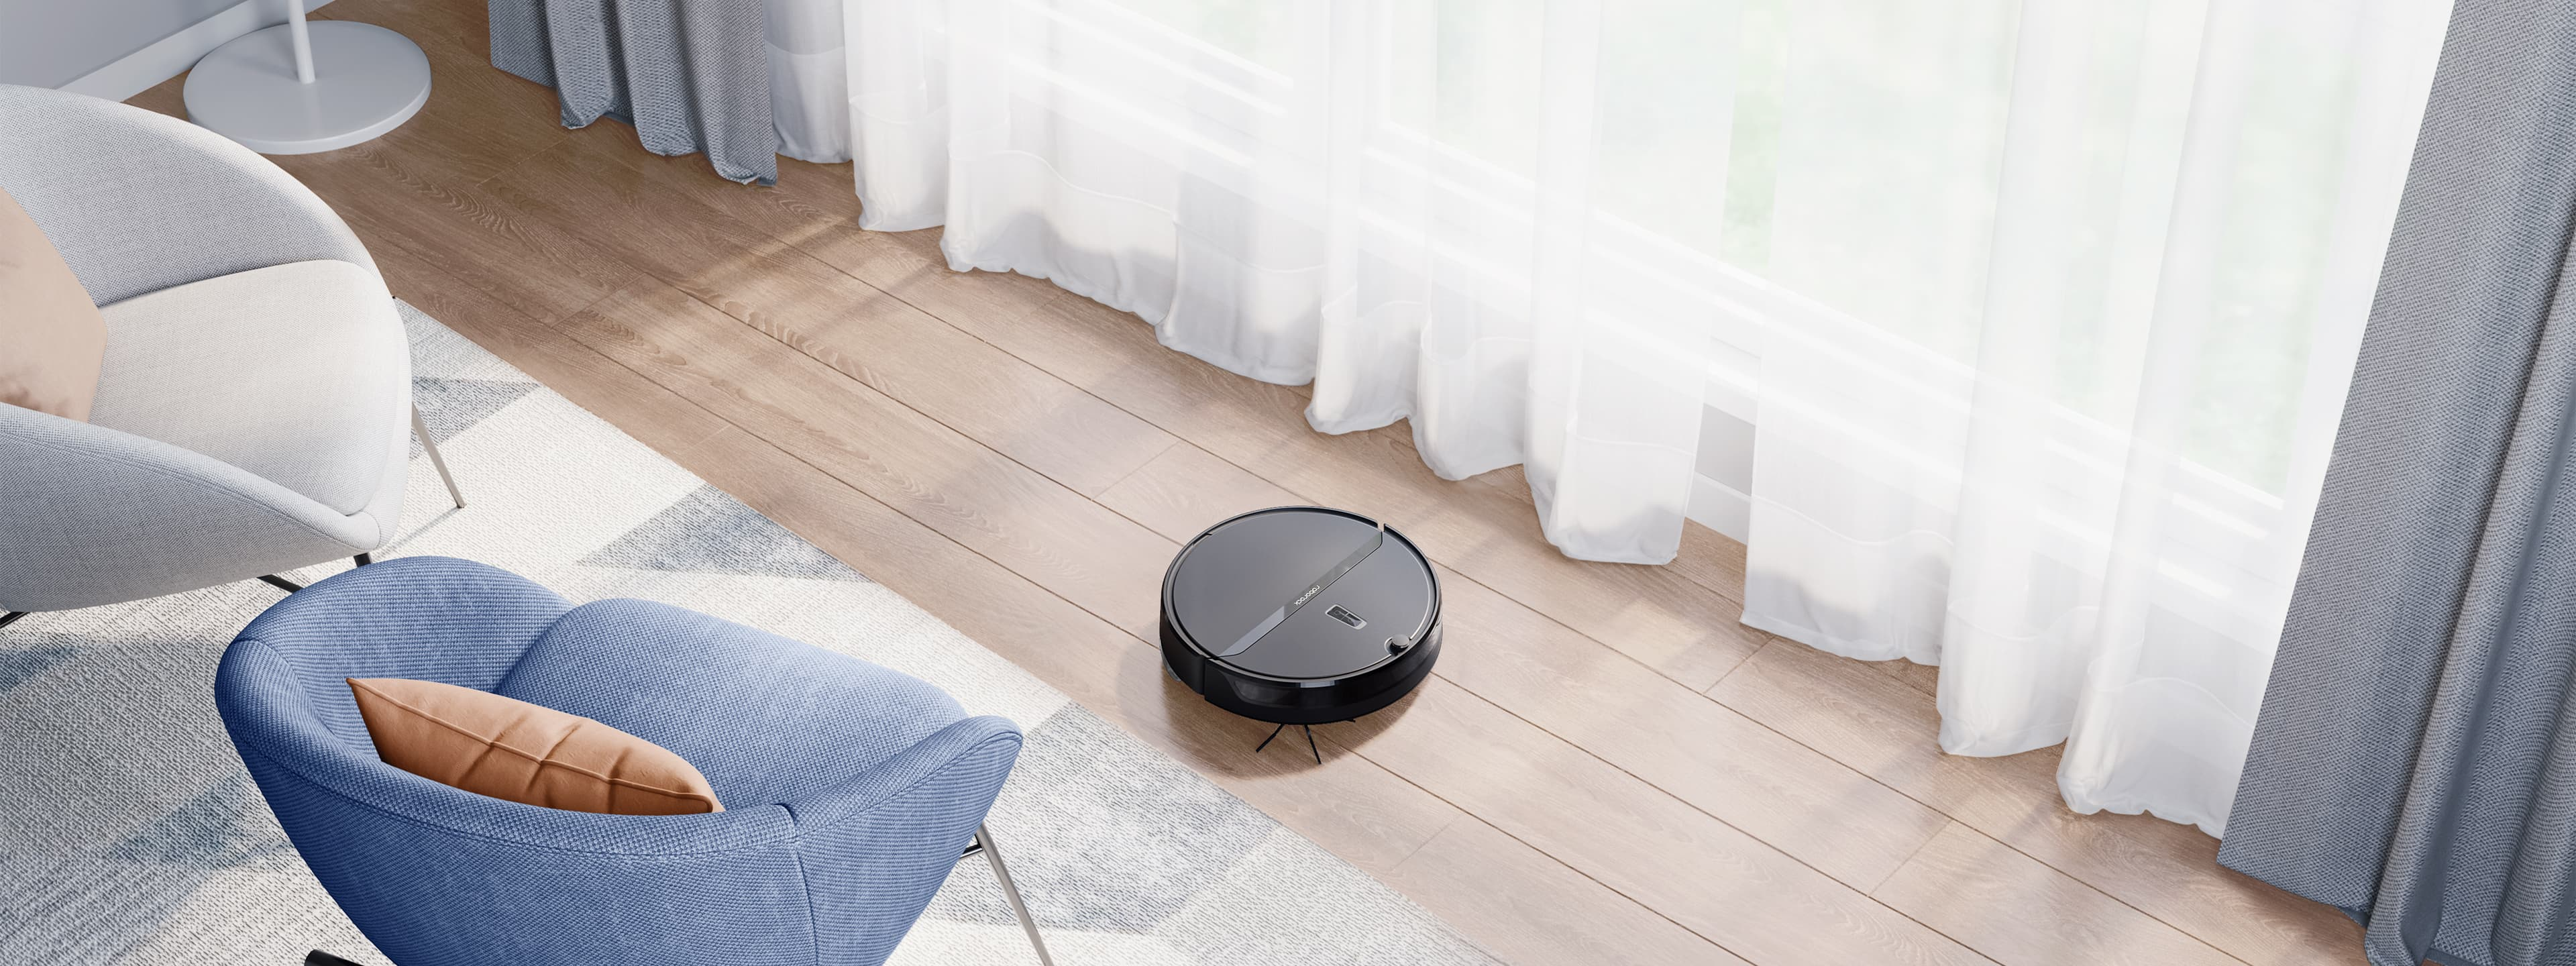 Roborock E4 Robot Vacuum Cleaner - Easy, Effective Home Cleaning